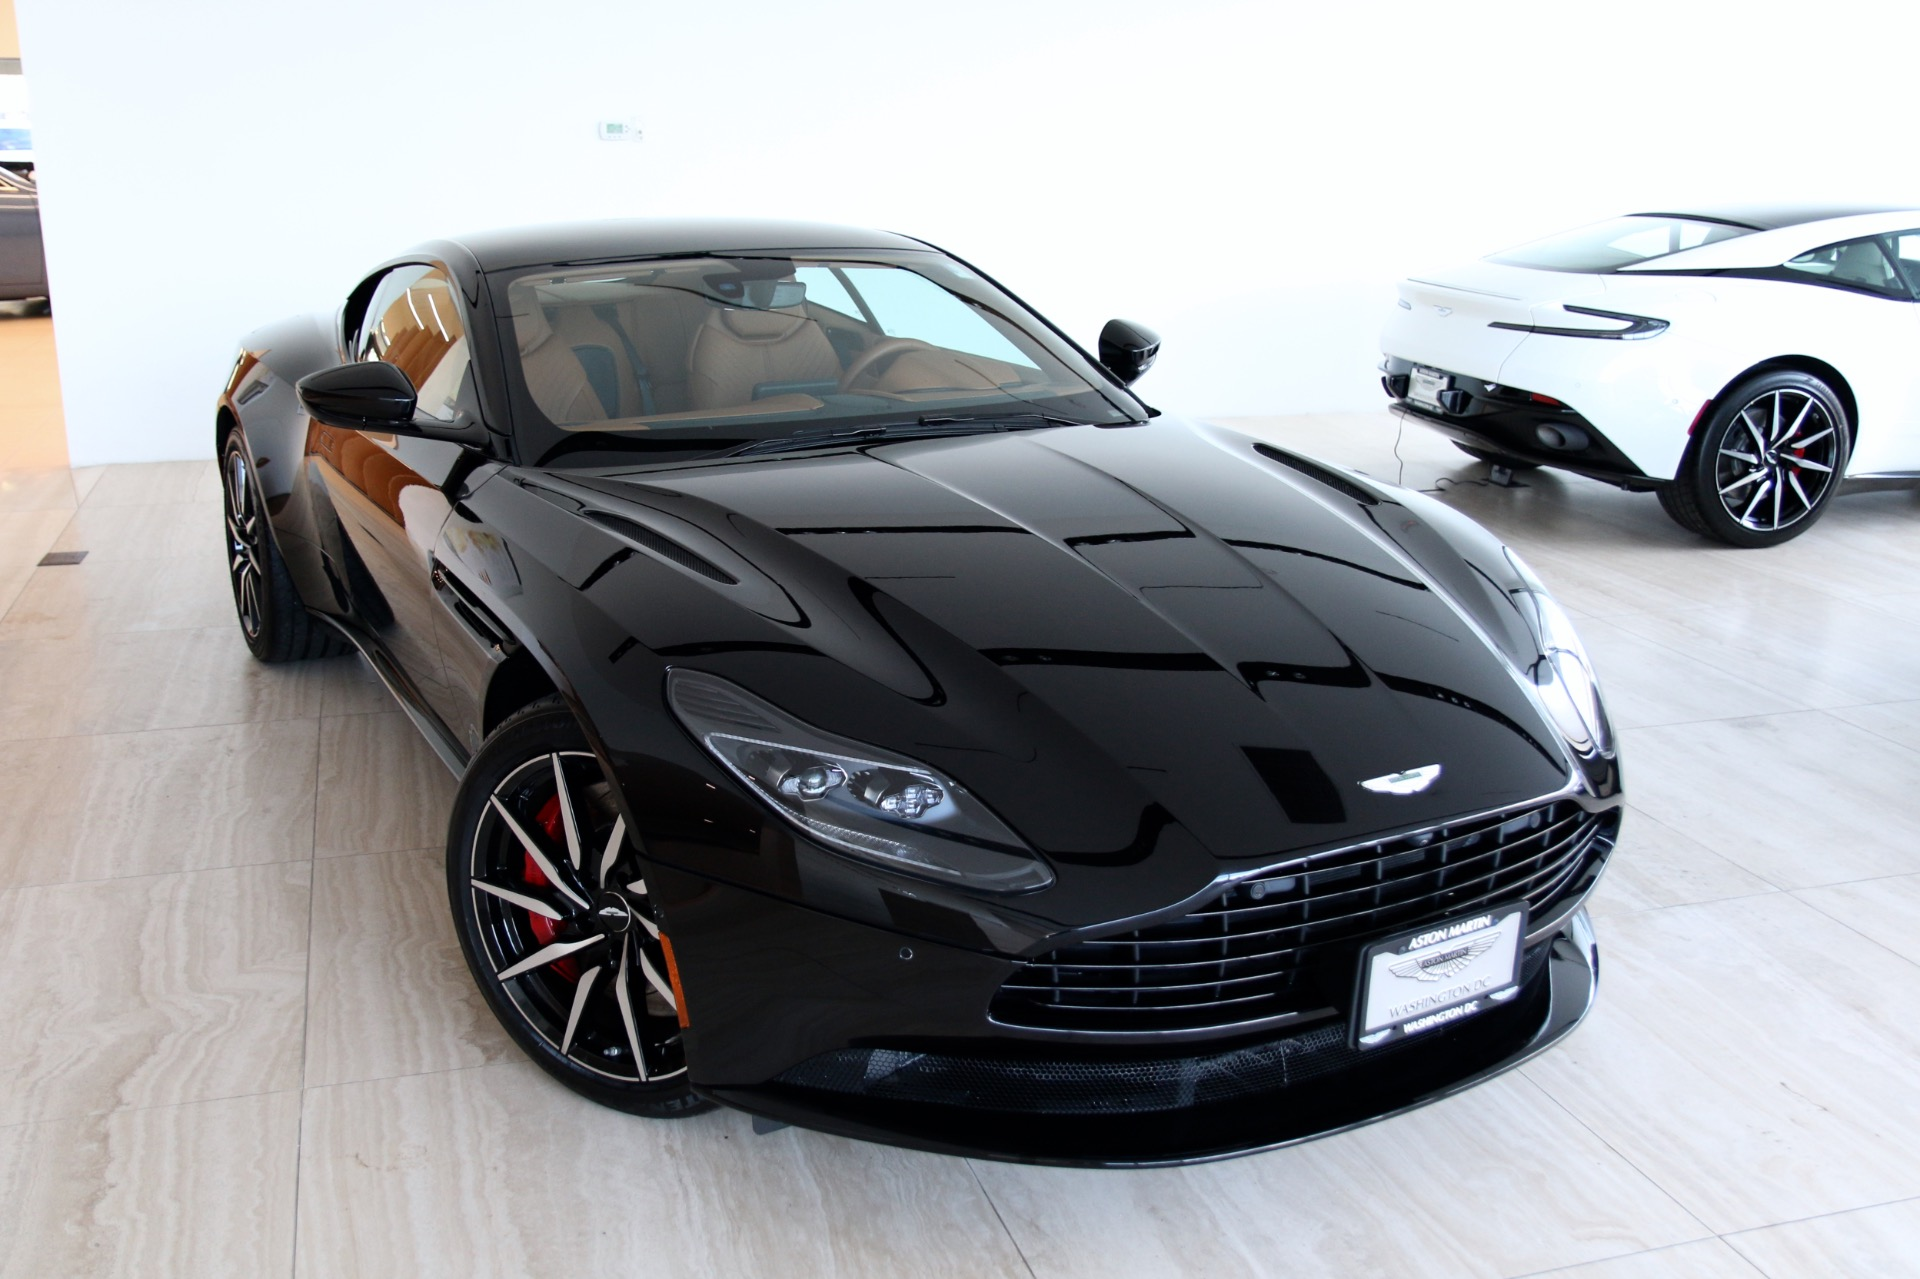 Aston Martin DB V Stock L For Sale Near Vienna VA - Aston martin washington dc